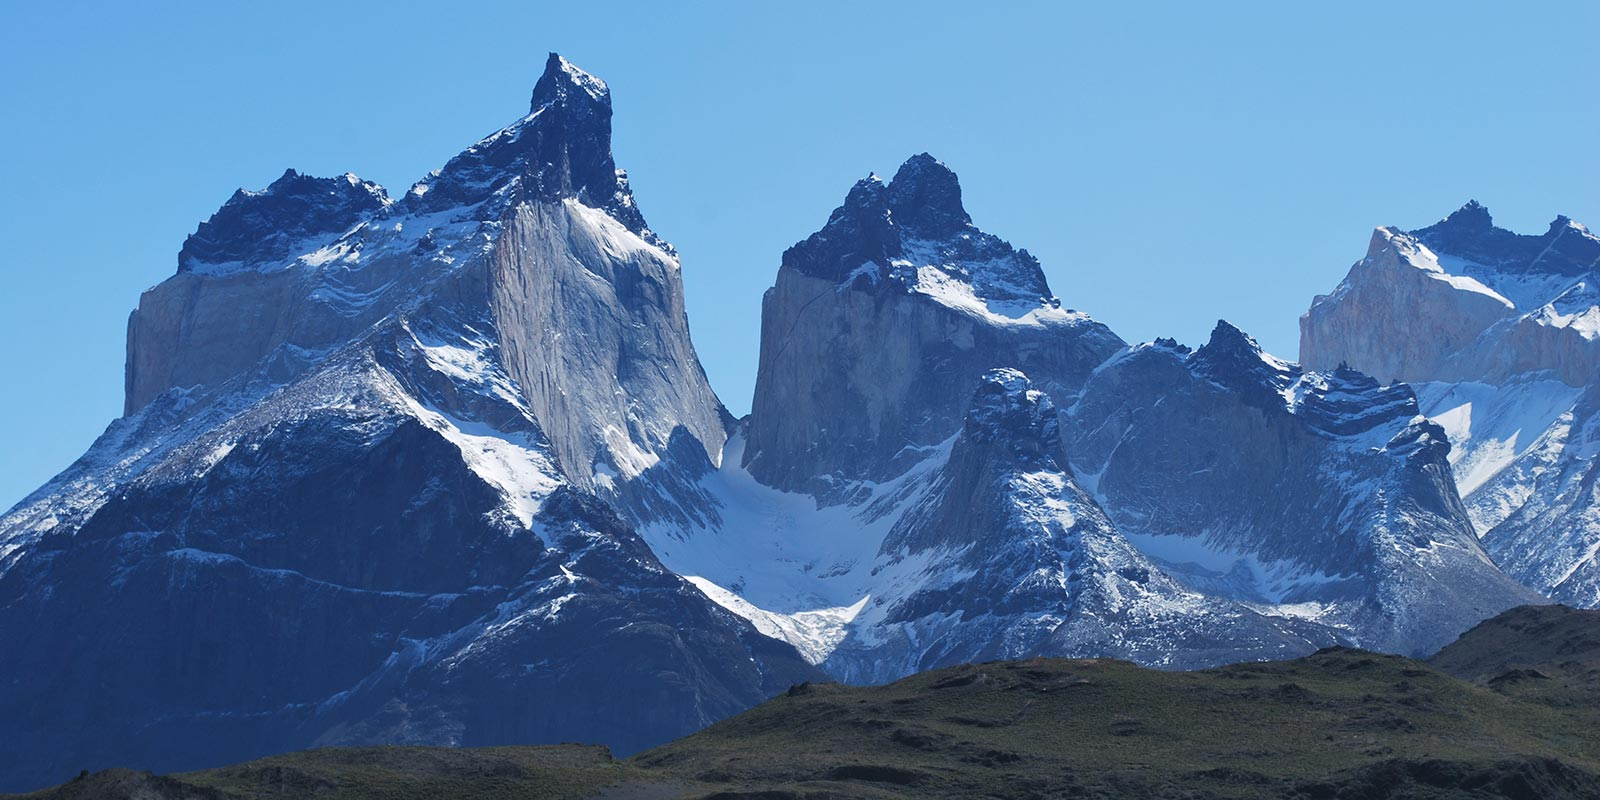 The Horns in Torres del Paine